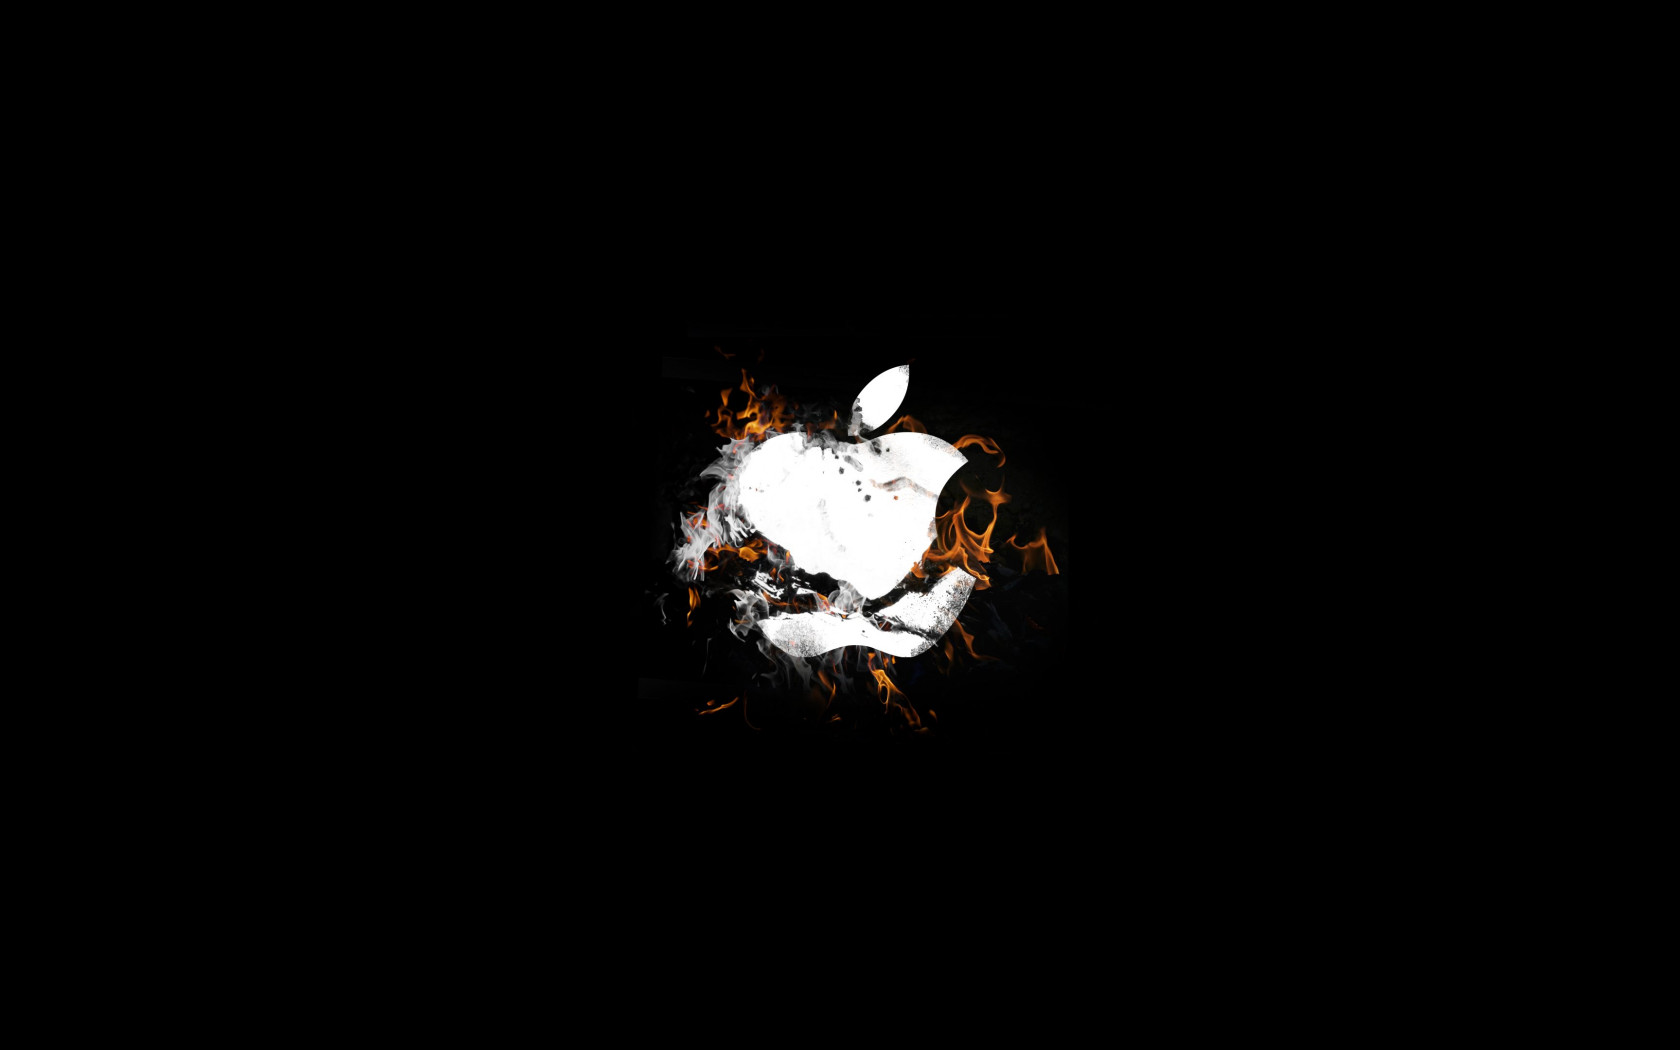 The Apple is on fire | 1680x1050 wallpaper